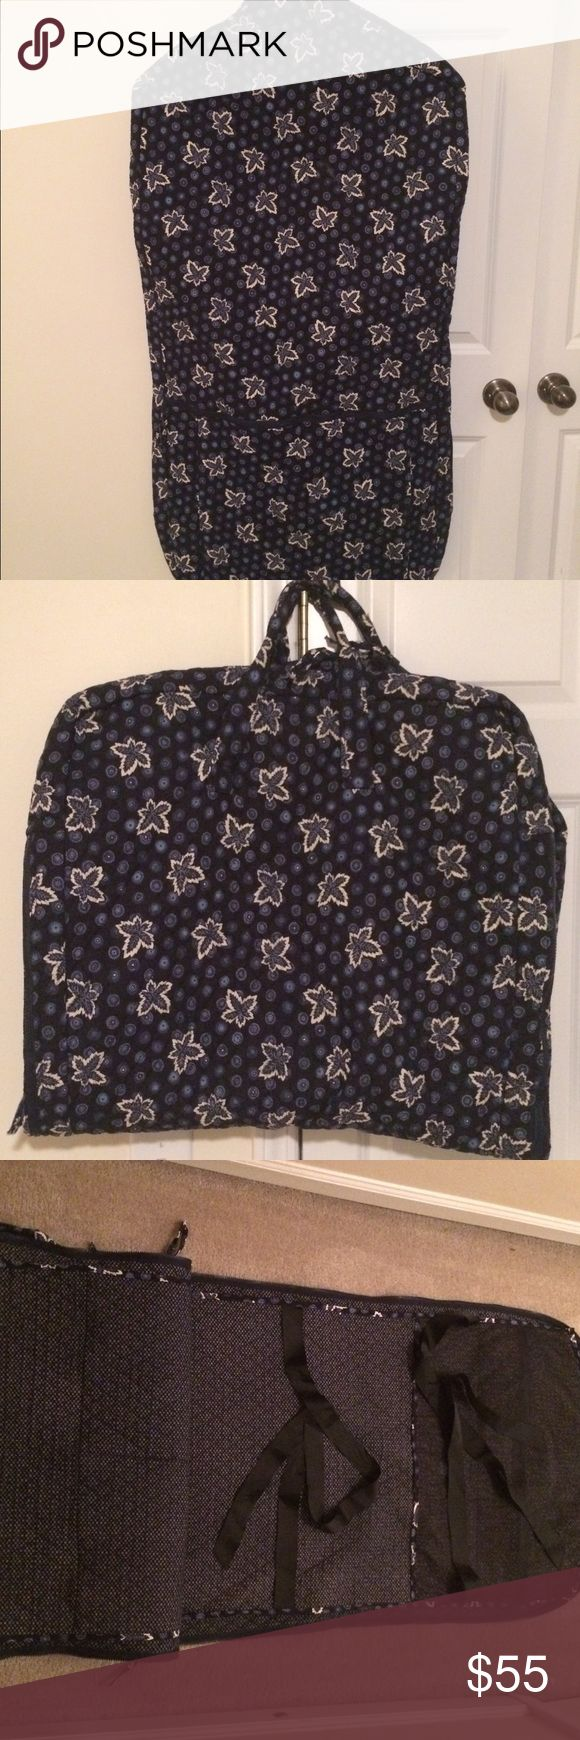 👗Vera Bradley Garment Bag. Gorgeous garment bag👗 👗Vera Bradley Garment Bag. Gorgeous garment bag for vacation or those quick weekend getaways. Approximately 46x22 🚫Trades, paypal, any questions in the comments regarding price please use the offer button or they will be ignored🚫 Vera Bradley Bags Travel Bags